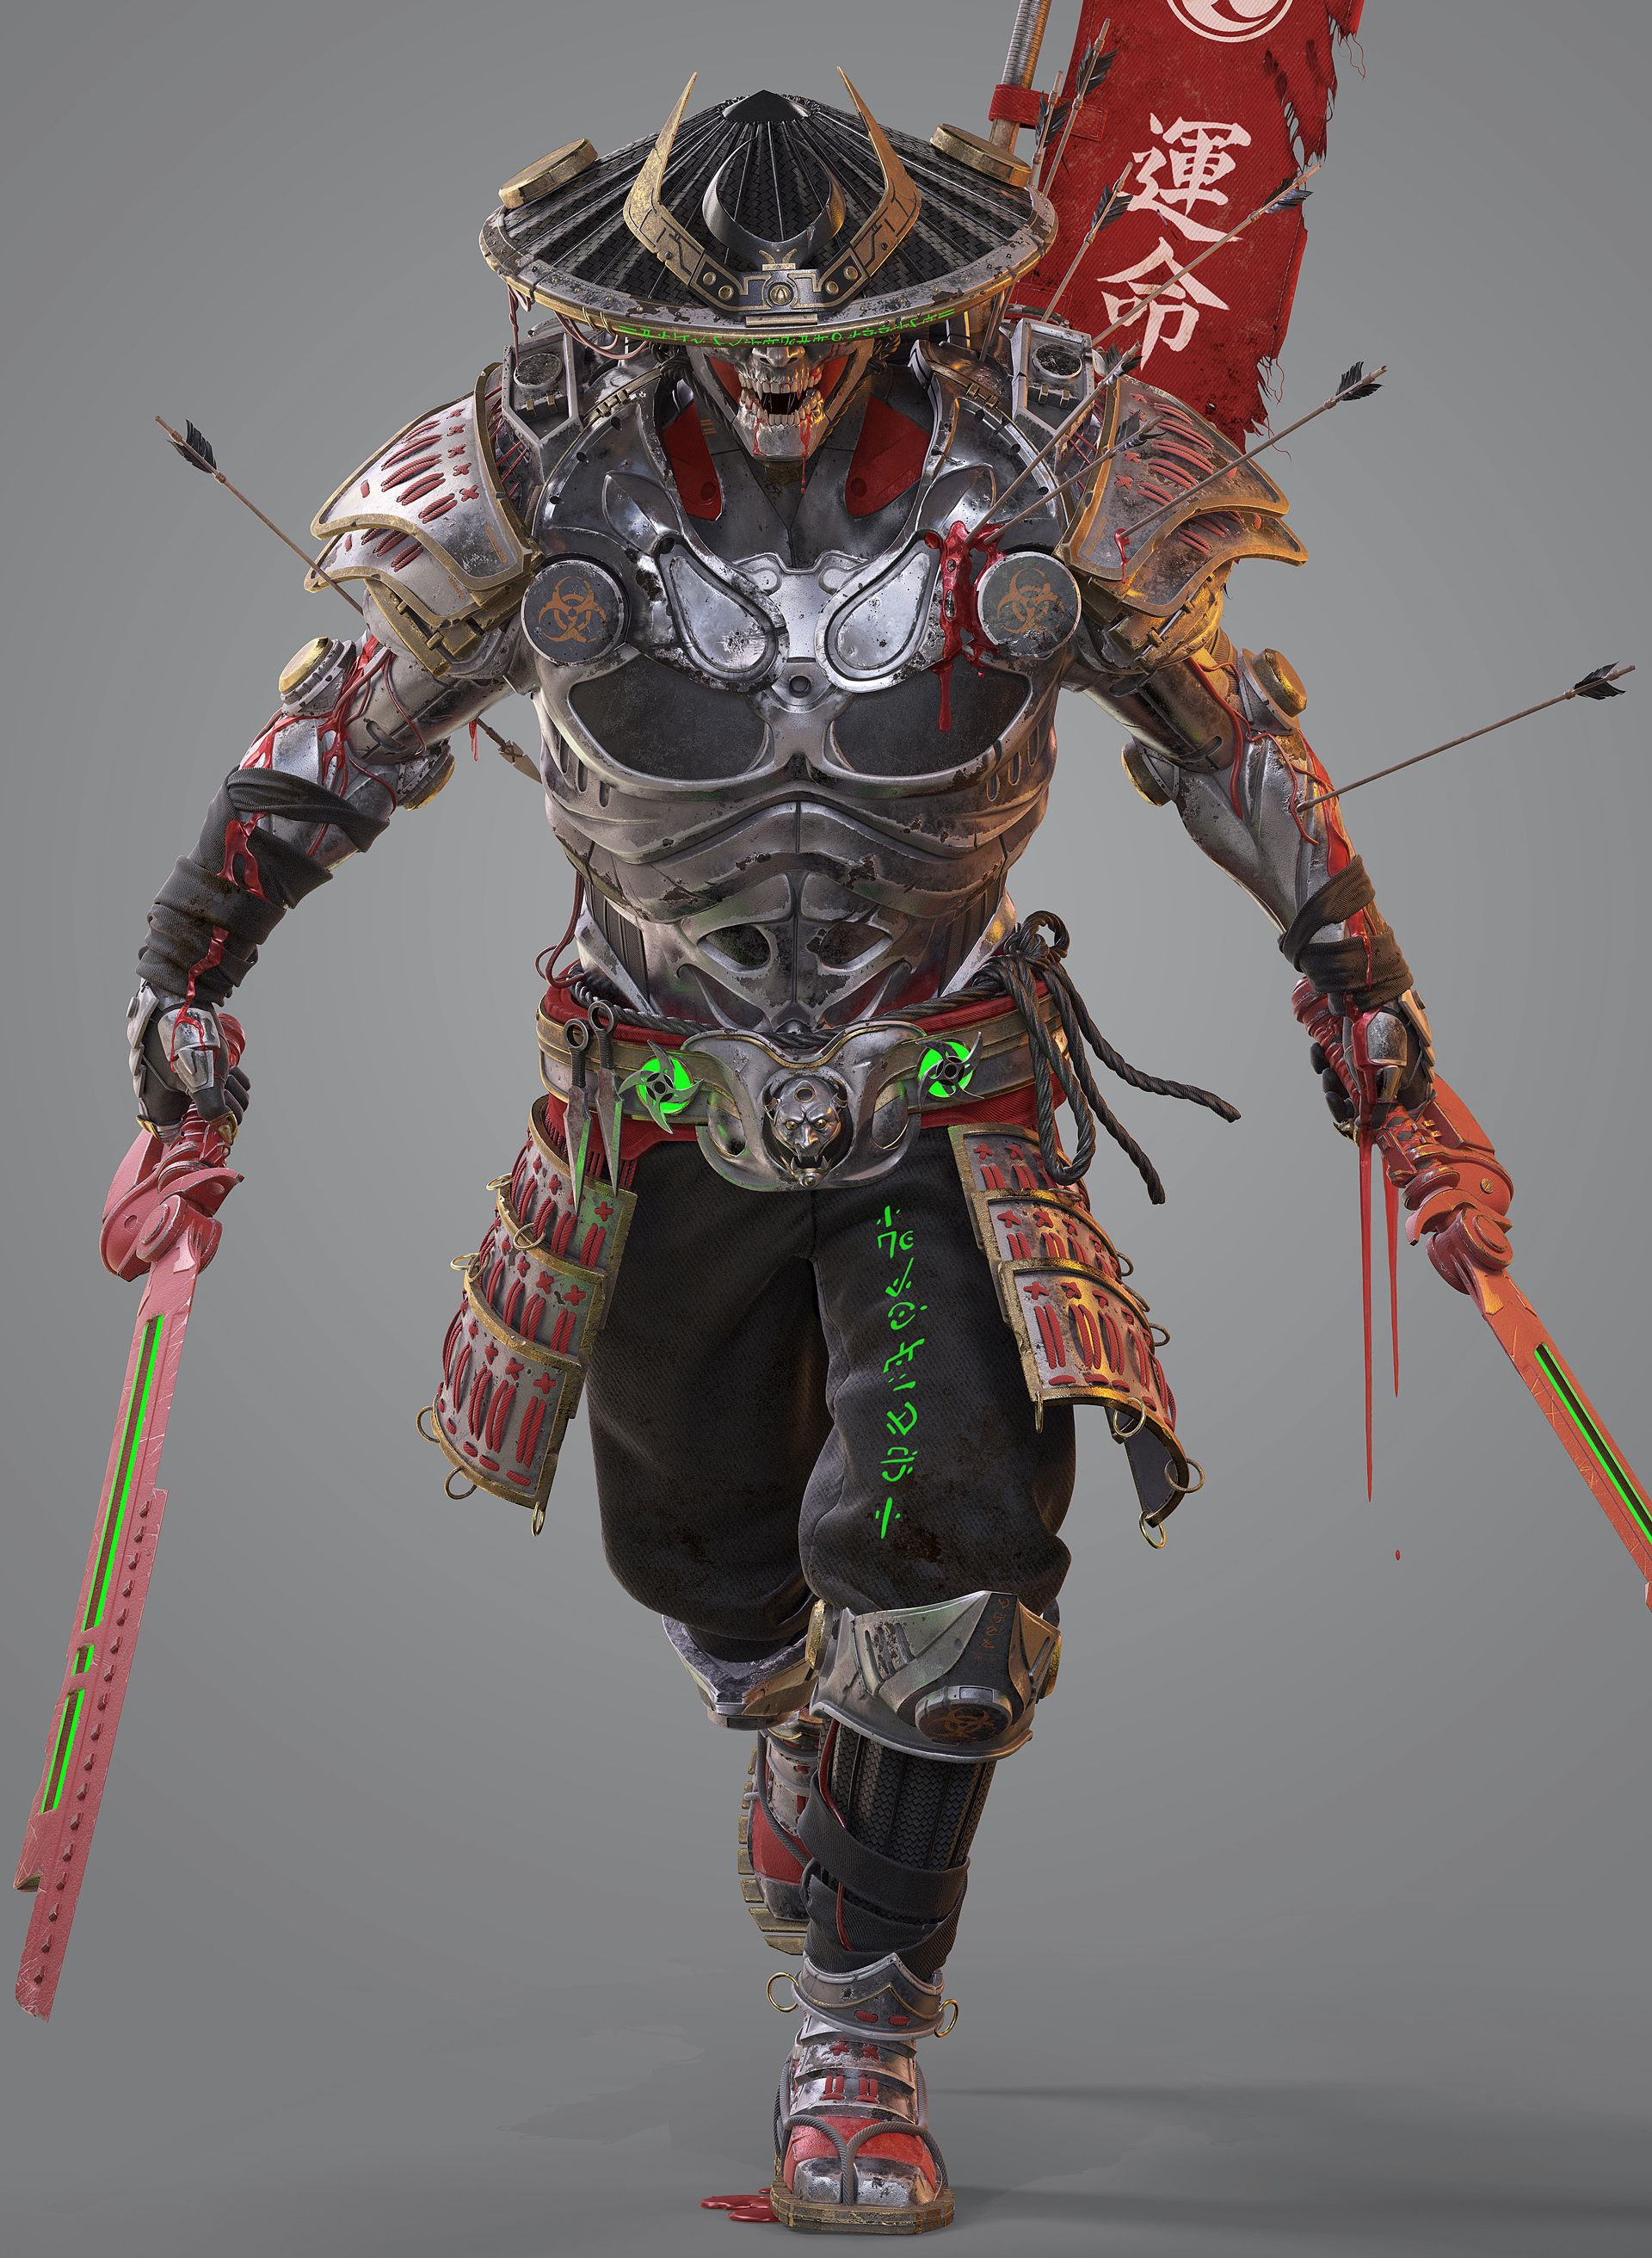 ArtStation - Anima 08s submission on Feudal Japan: The